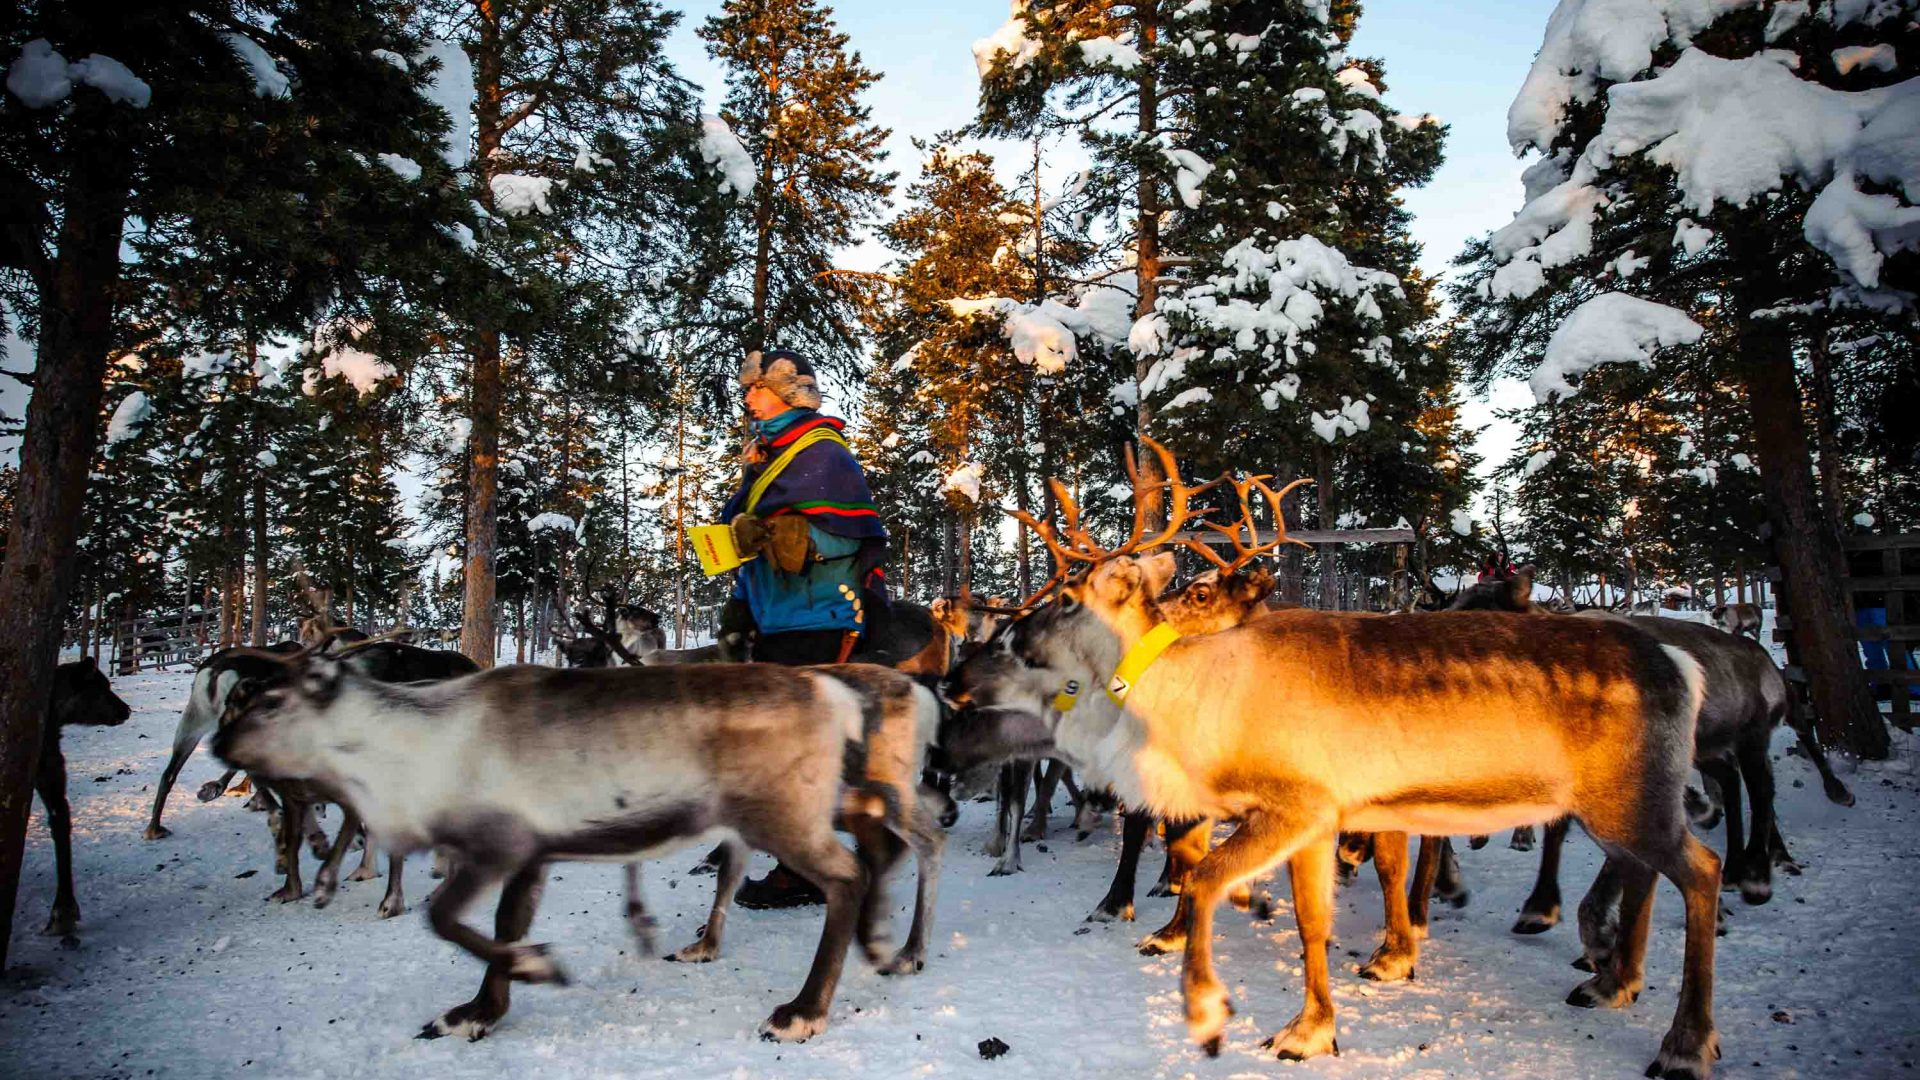 The sun sets in the small village of Jukkasjärvi, Sweden's northernmost town casting a beautiful light on the reindeers.